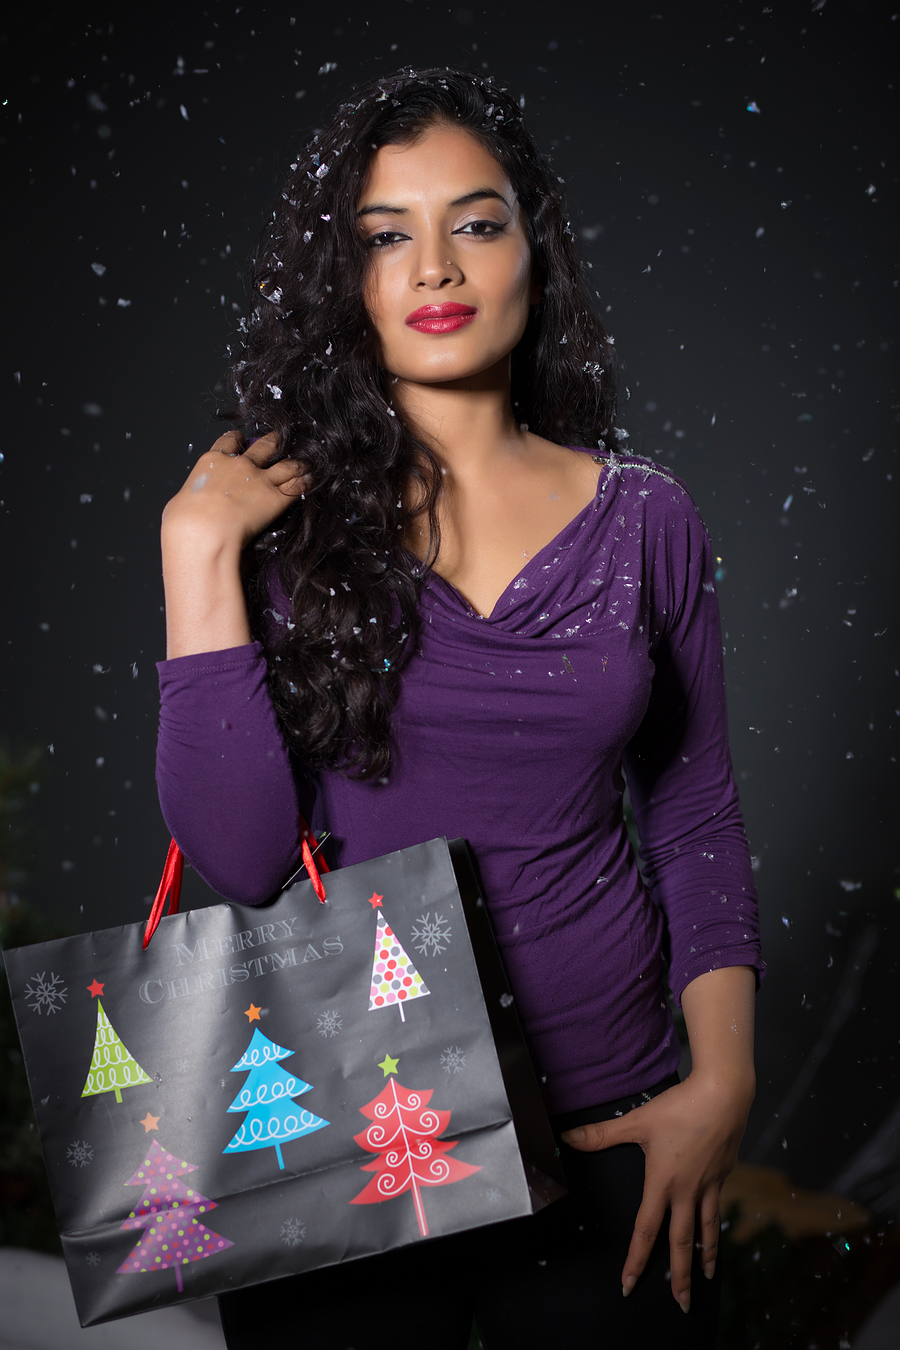 Christmas Shopping / Photography by Chris Horgan, Model Fatheha / Uploaded 17th December 2015 @ 07:01 PM